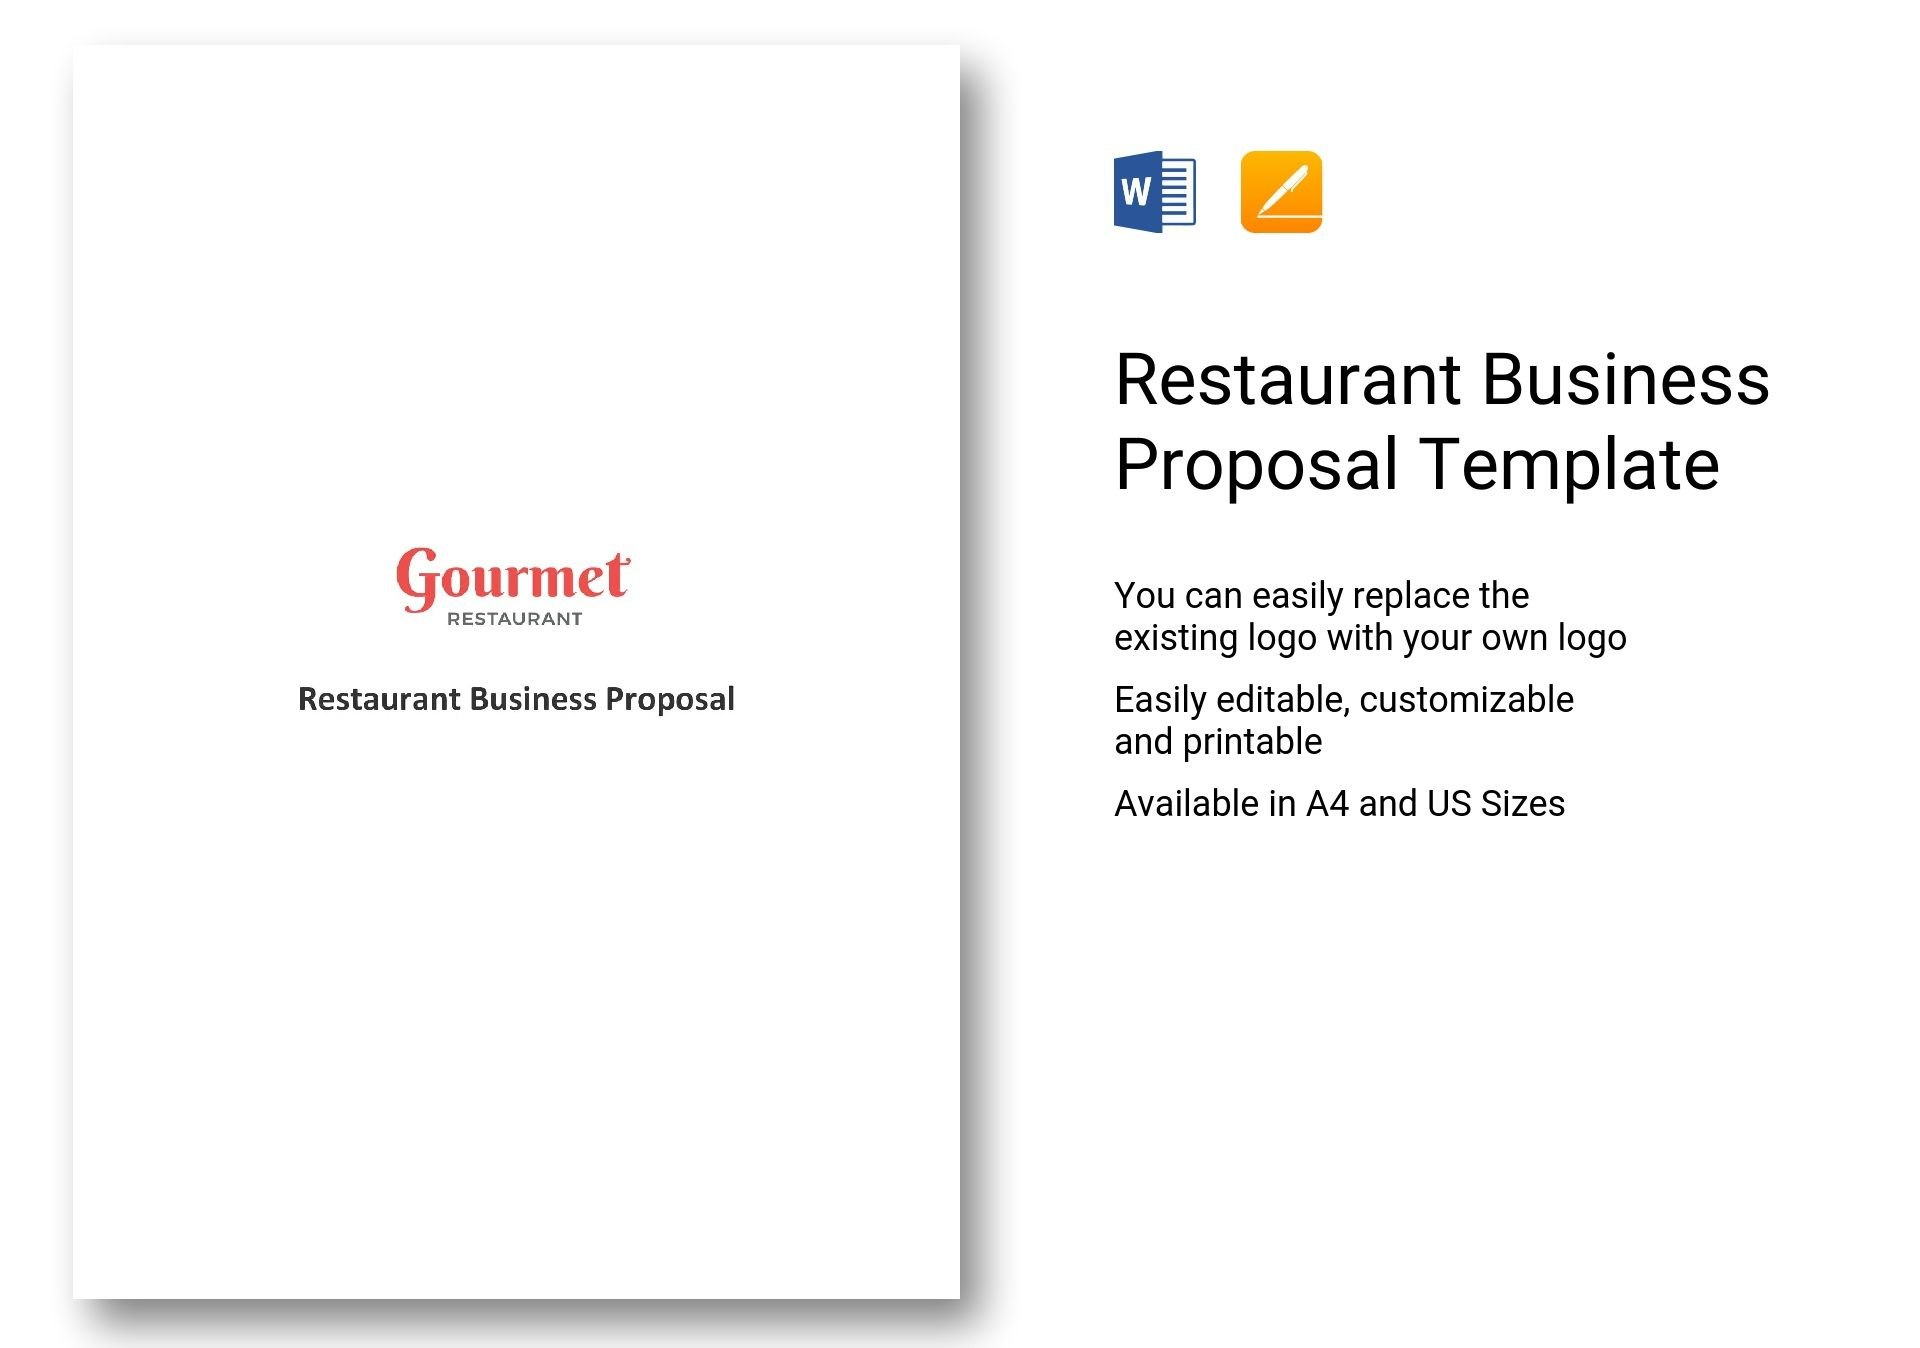 Restaurant Business Proposal Template In Word Apple Pages Throughout Restaurant Business Proposal Template